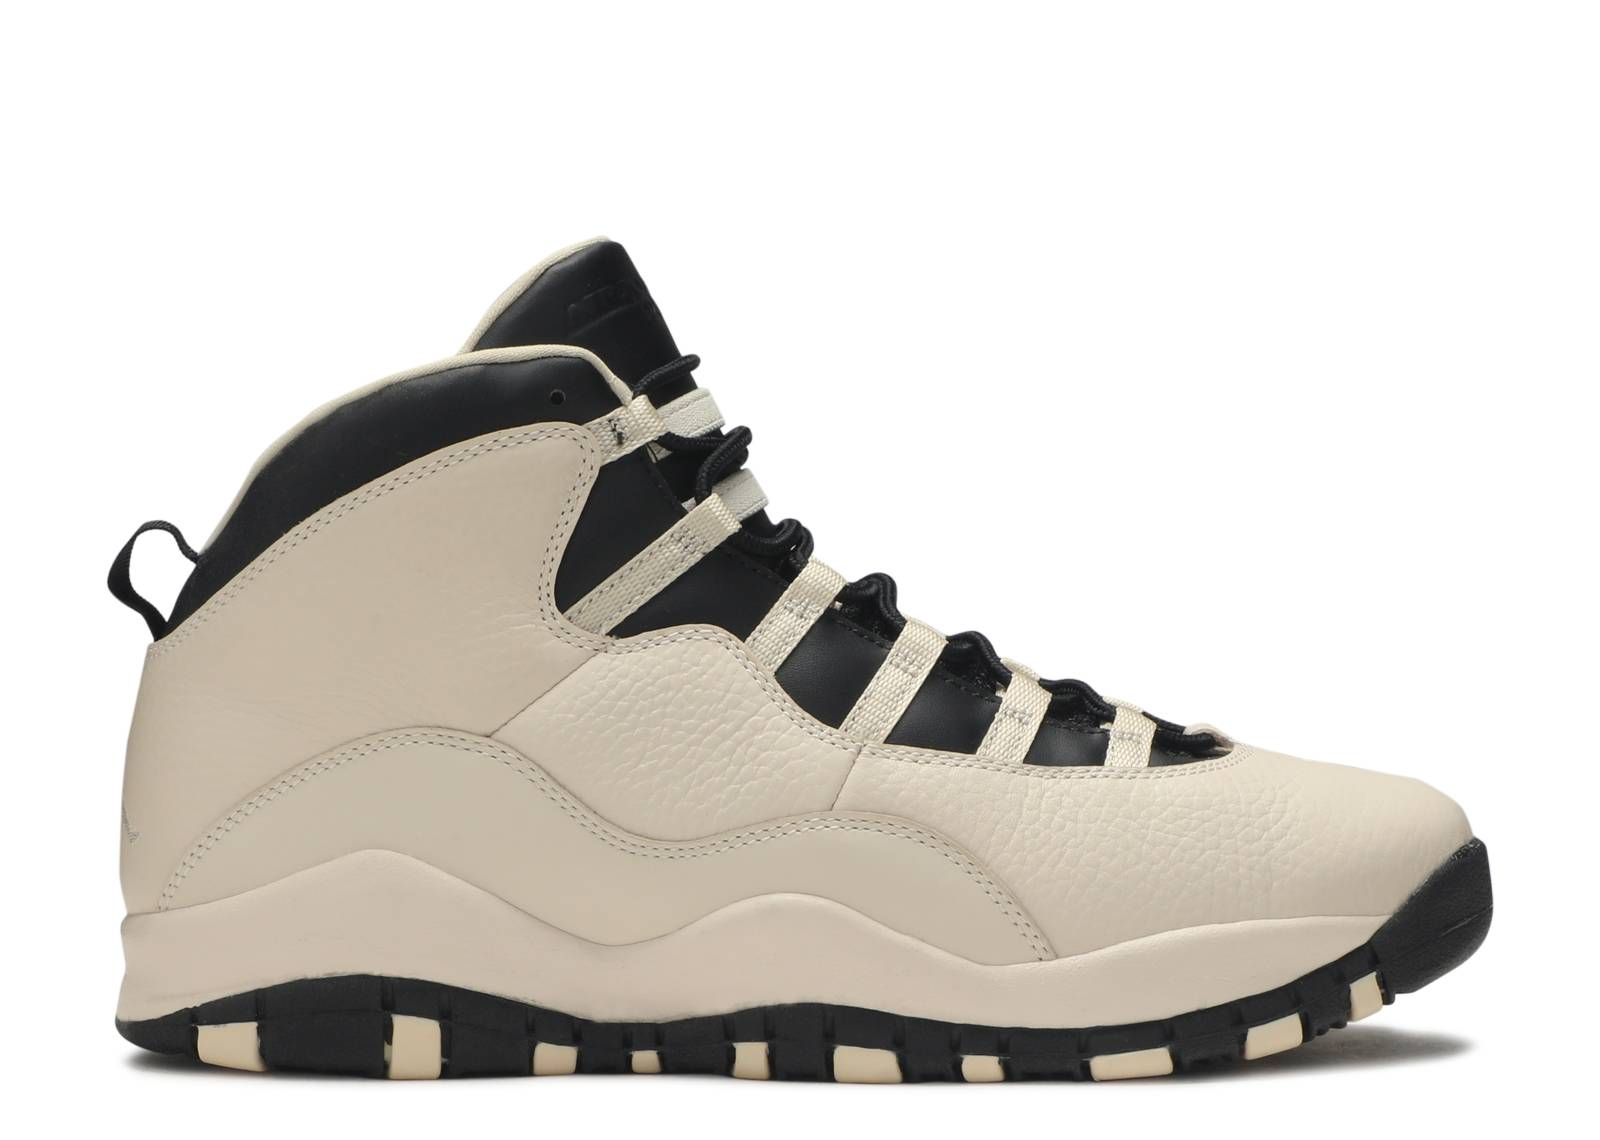 competitive price 4e3a7 275d7 air jordan 10 retro prem gg (gs)